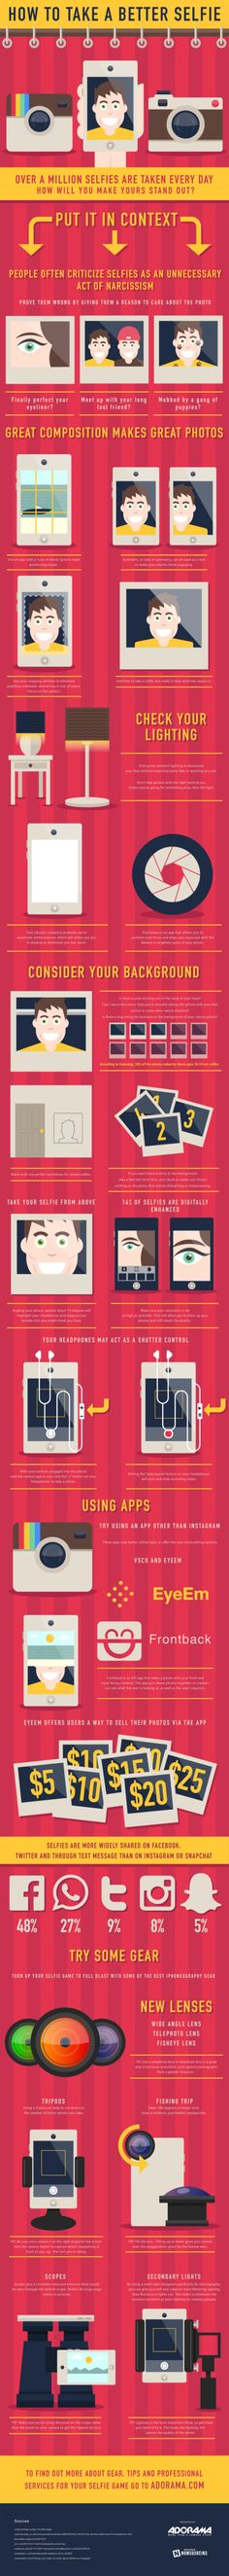 How To Take A Perfect Selfie That Rock On Social Networking Sites - #infographic #socialmedia #Selfie